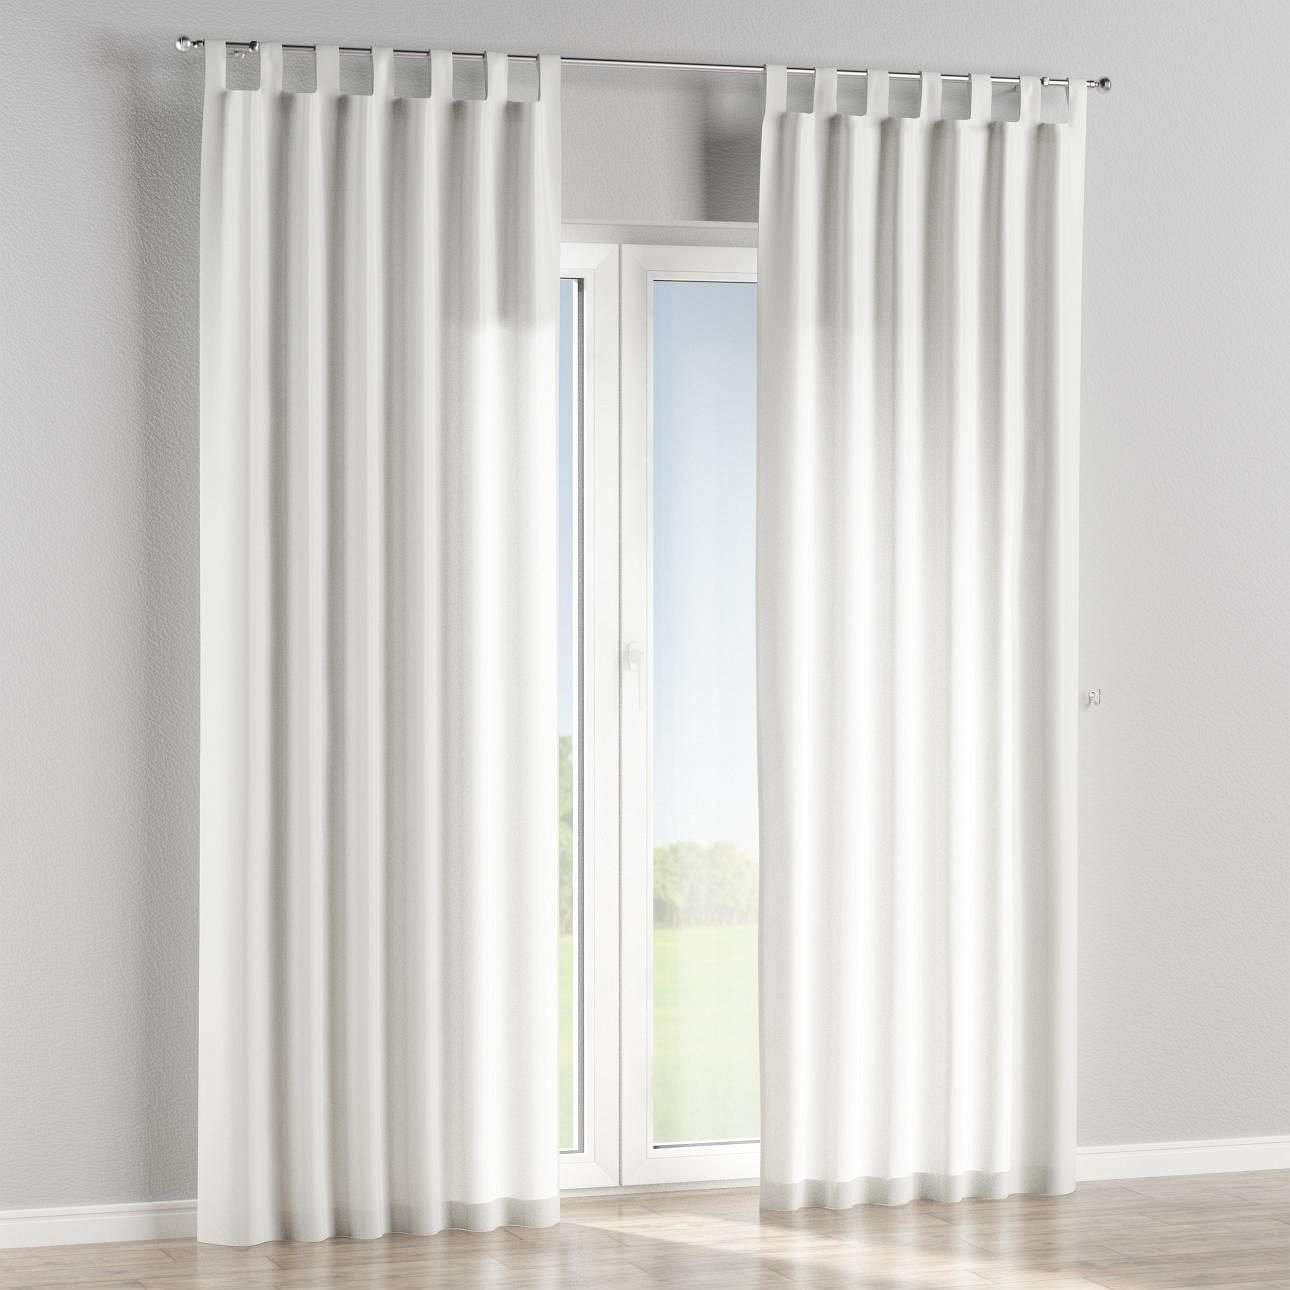 Tab top lined curtains in collection Mirella, fabric: 142-06